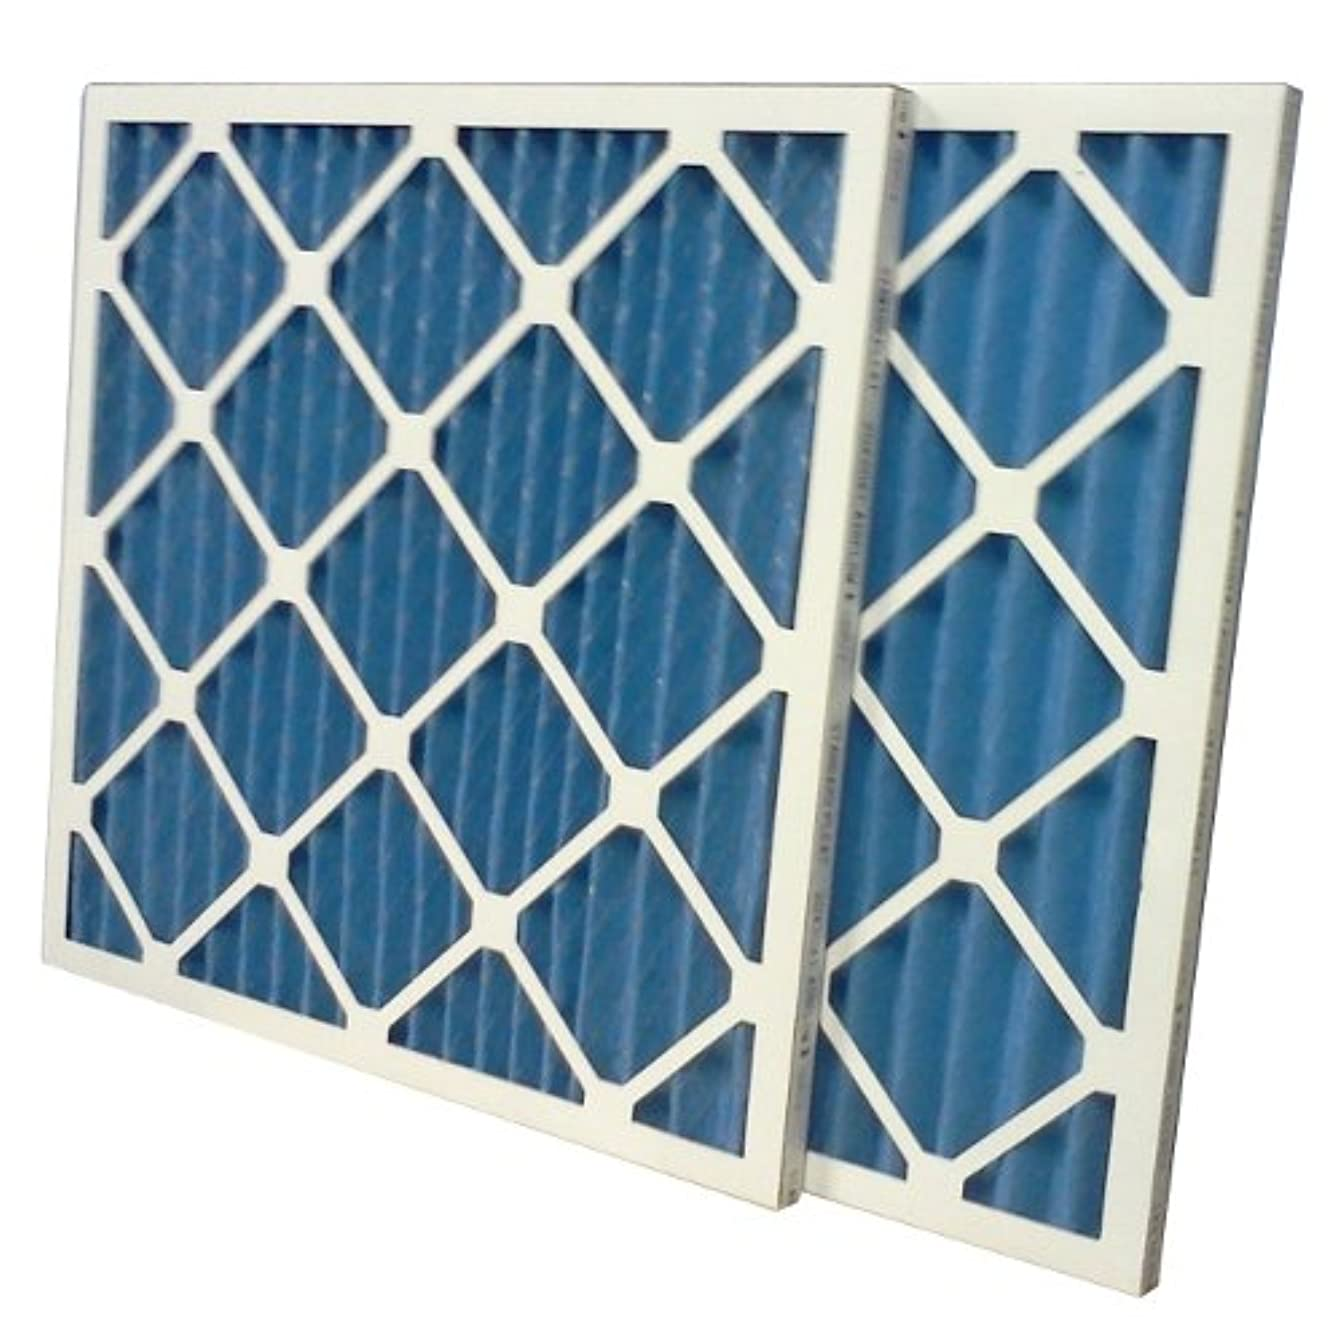 US Home Filter SC40-16X25X1-6 MERV 8 Pleated Air Filter (Pack of 6), 16